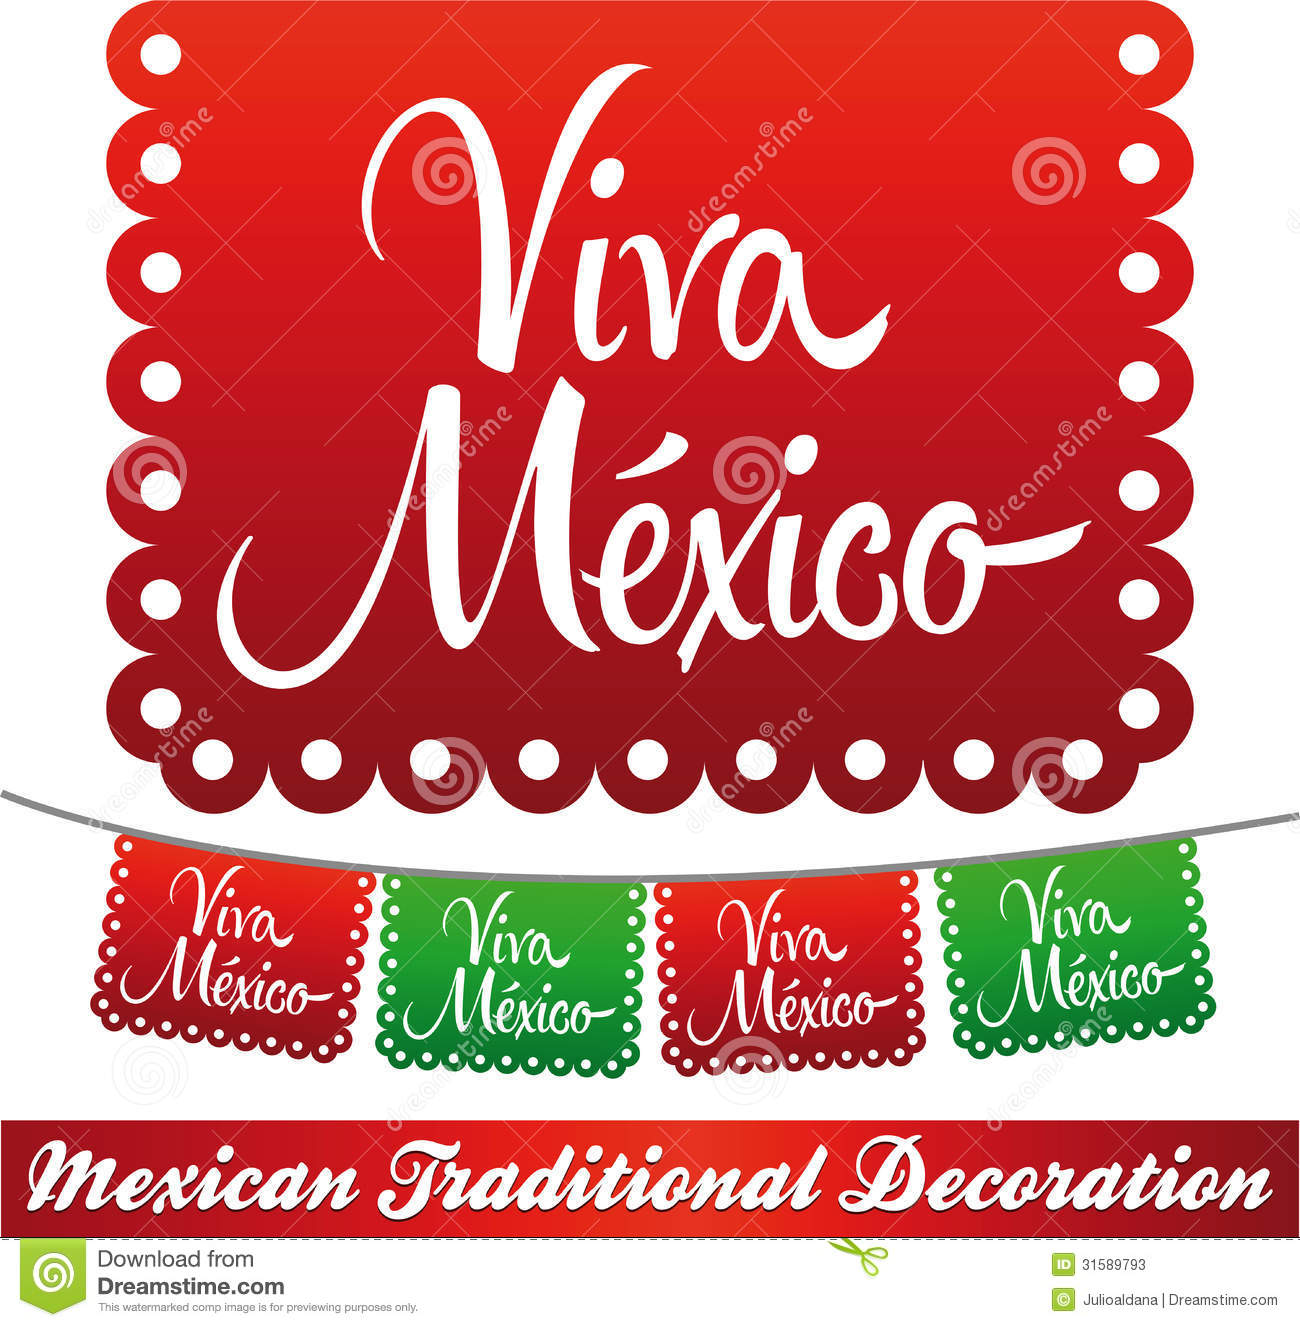 Traditional mexican christmas decorations - Decoration Holiday Mexican